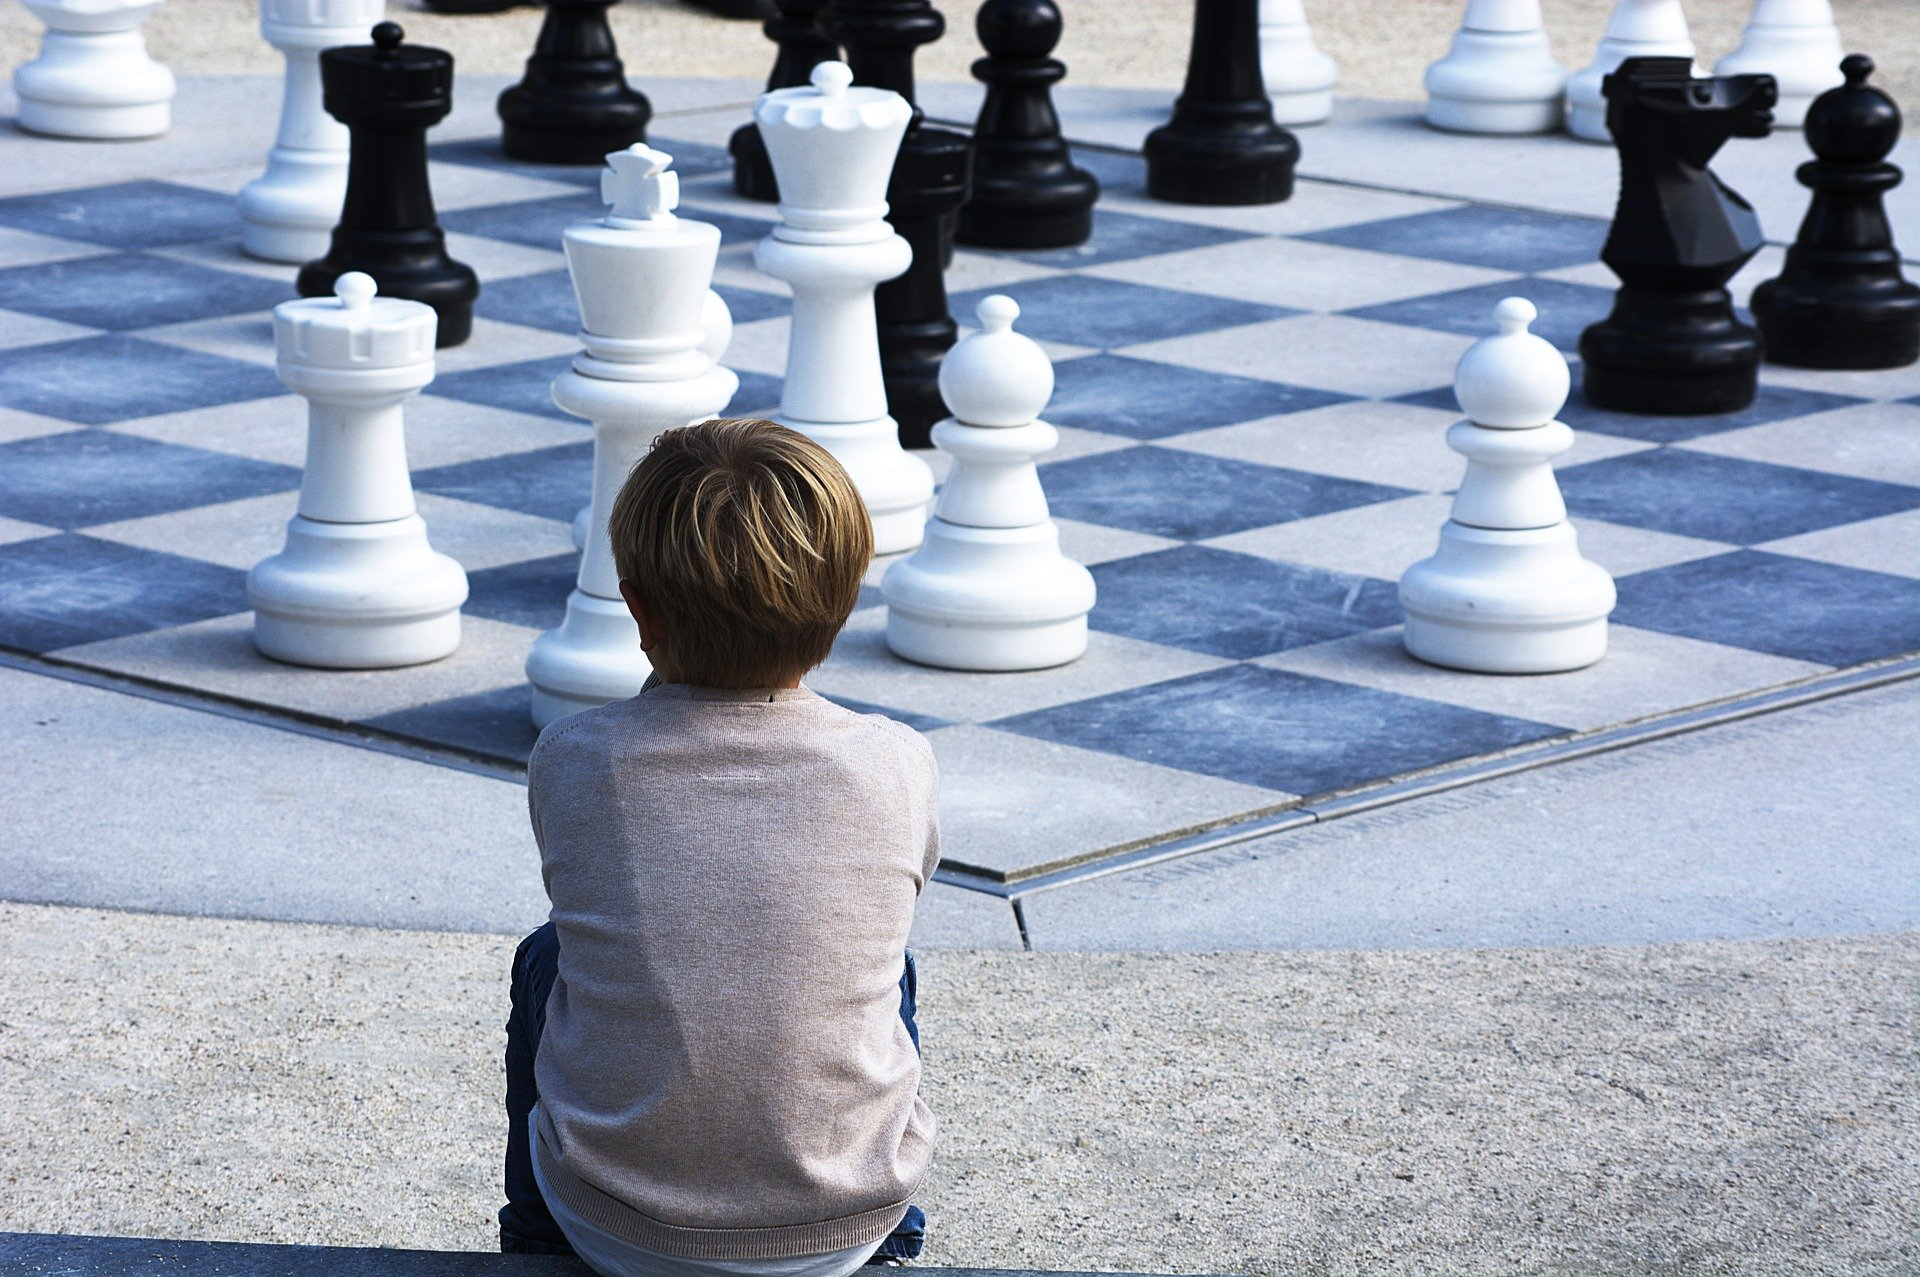 Pictured - A young boy sits and looks over at a chess landscape   Source: Pixabay